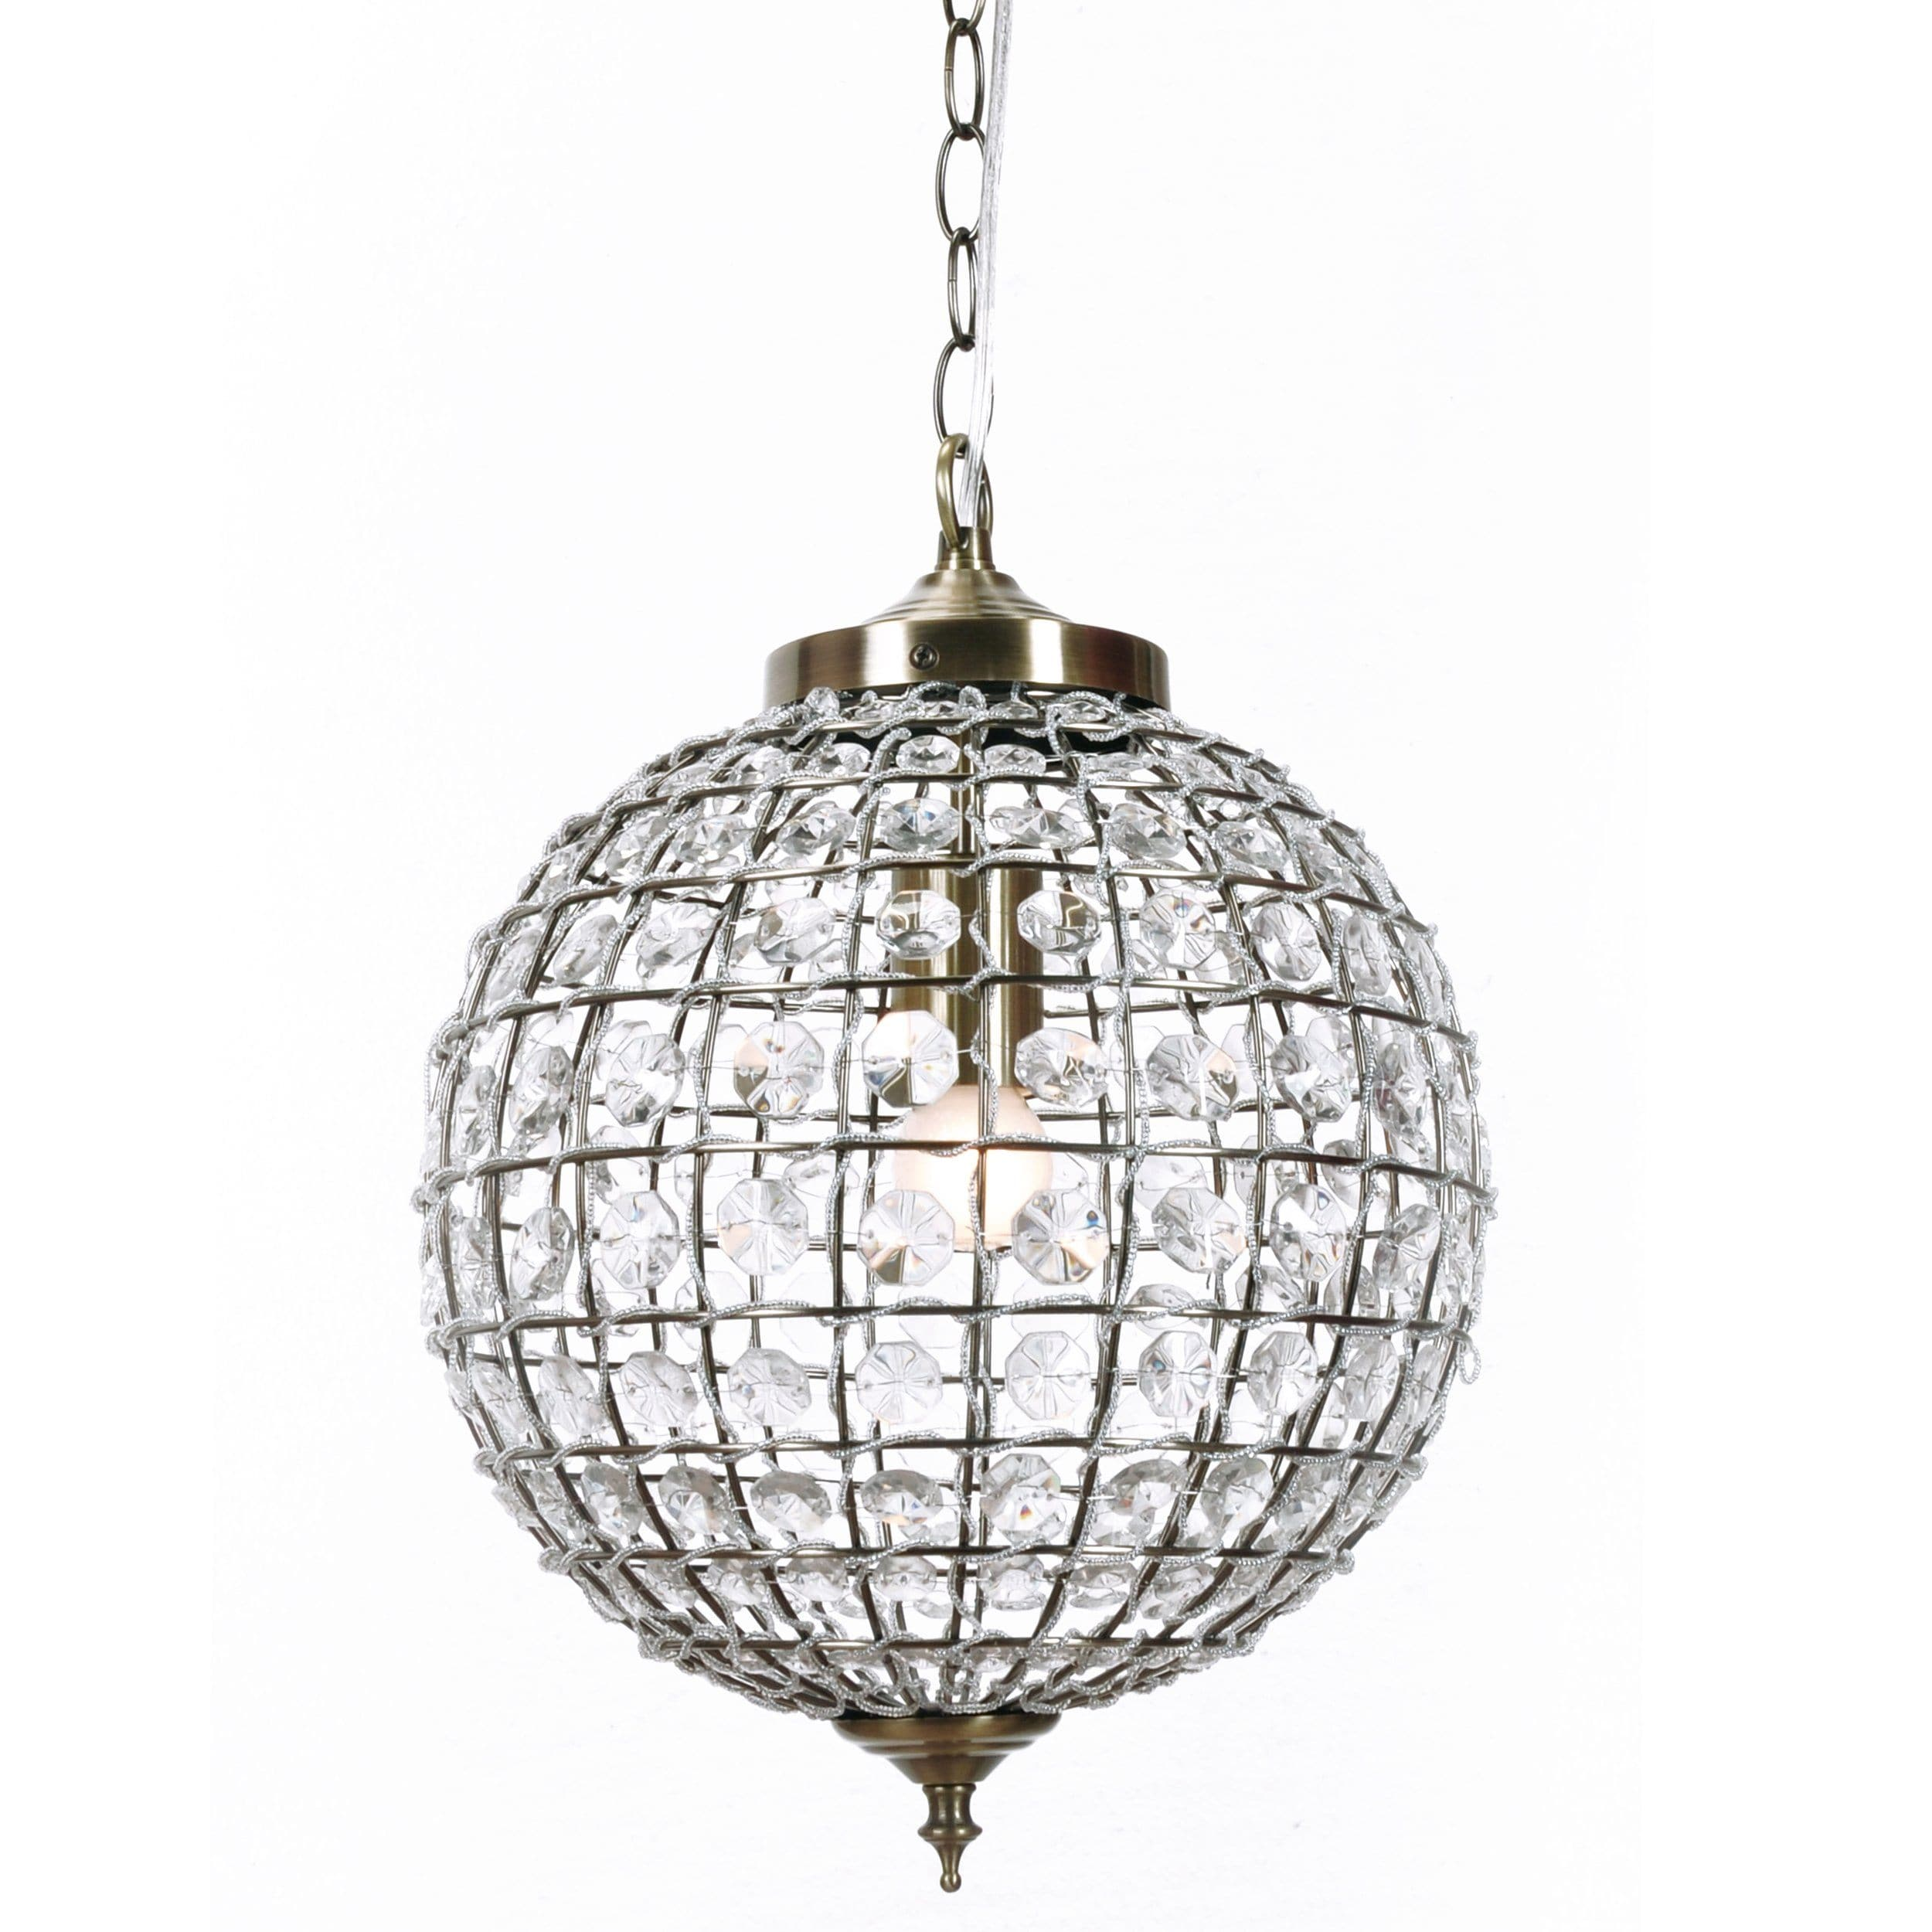 Casablanca crystal ball pendant chandelier antique brass 2 sizes casablanca crystal ball chandelier with antique brass fittings on a white background mozeypictures Images